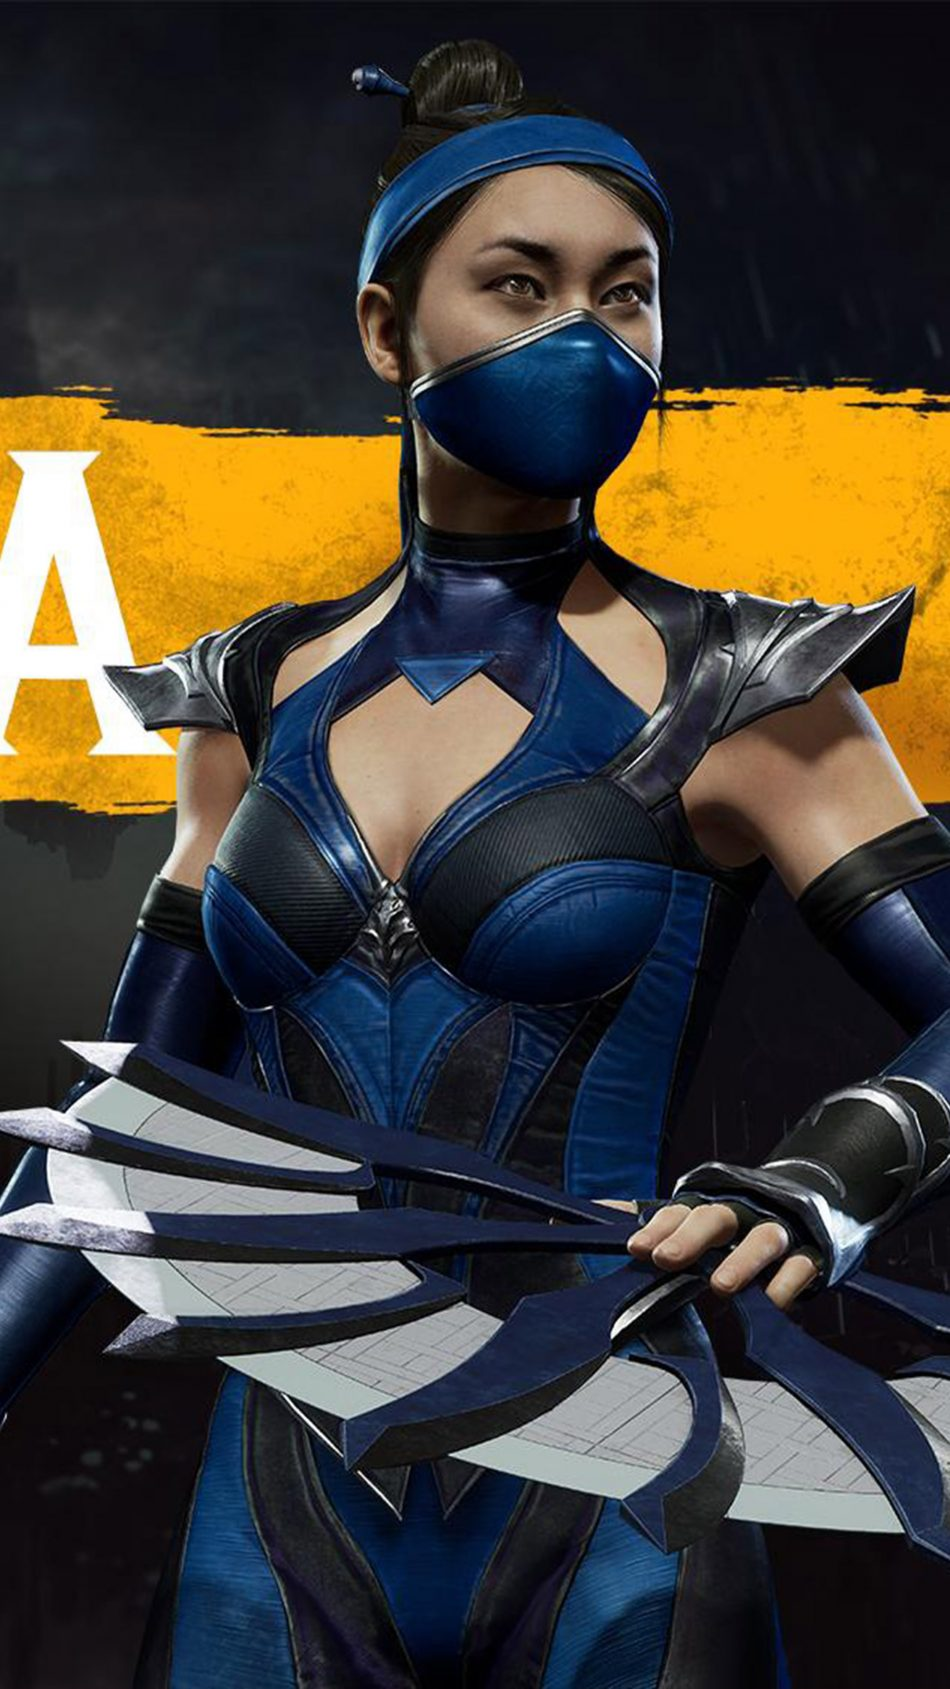 Image result for Kitana Mortal Kombat wallpaper